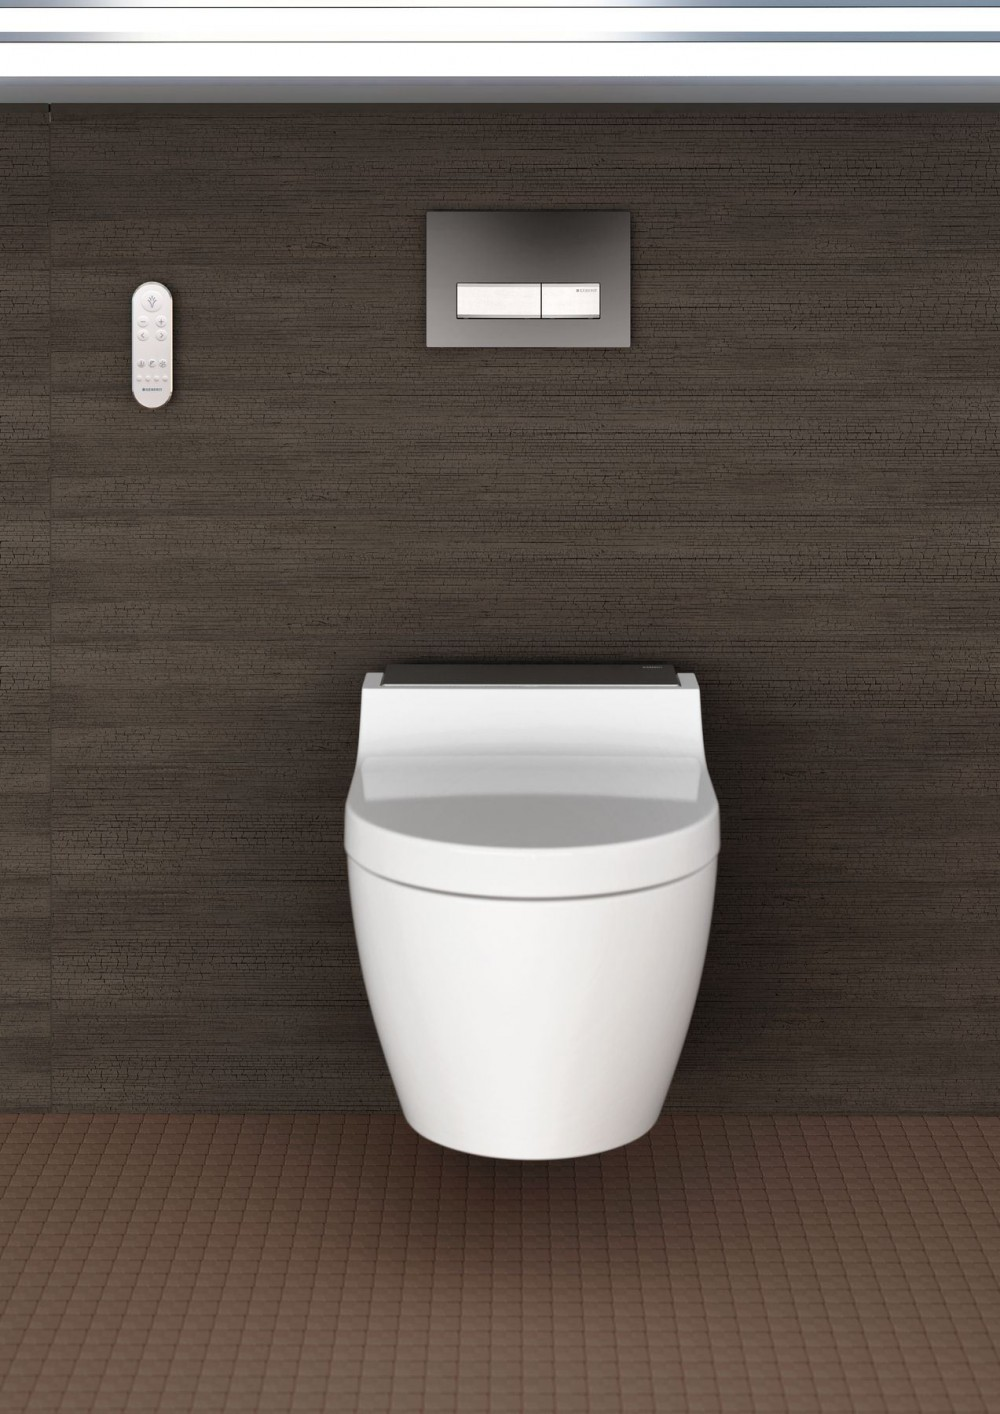 geberit aquaclean tuma comfort complete shower toilet set tooaleta. Black Bedroom Furniture Sets. Home Design Ideas